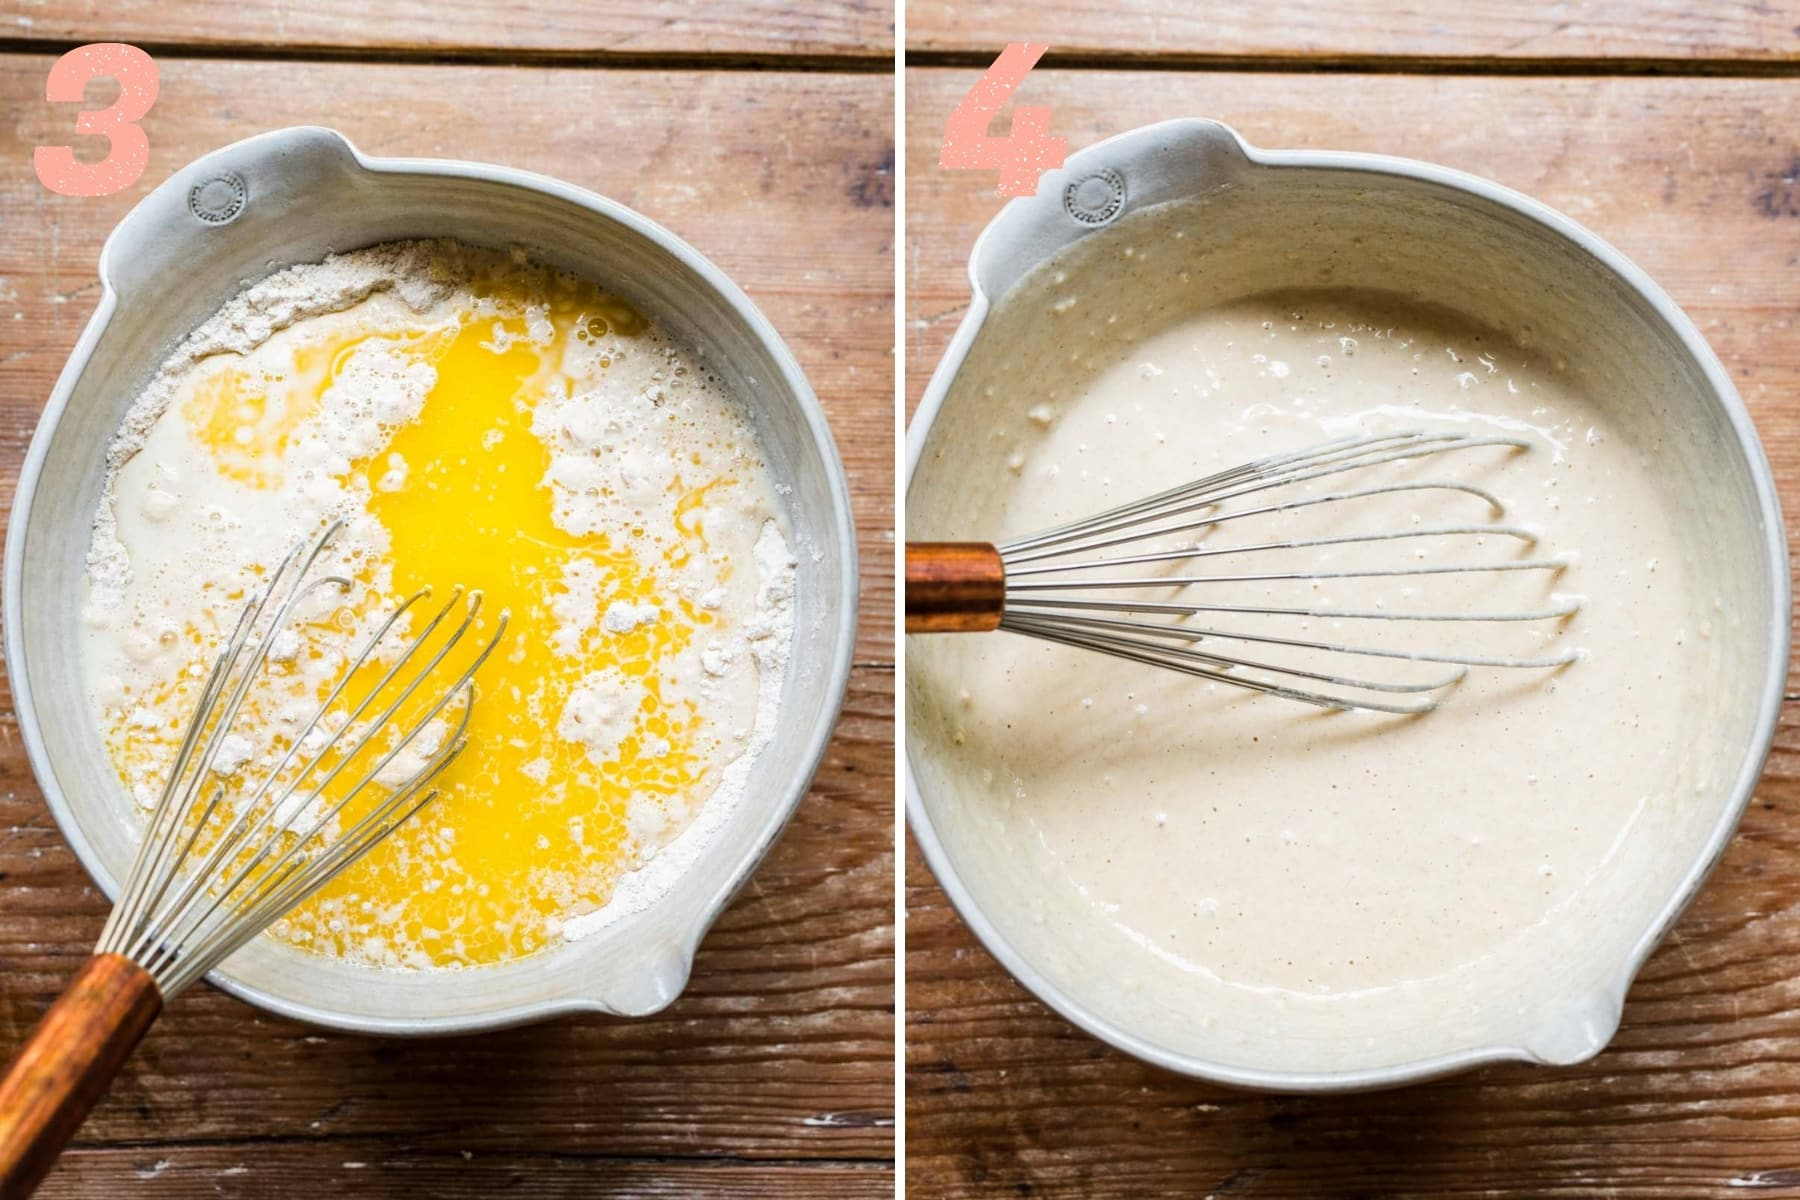 before and after mixing wet ingredients into dry ingredients for vegan waffle batter.